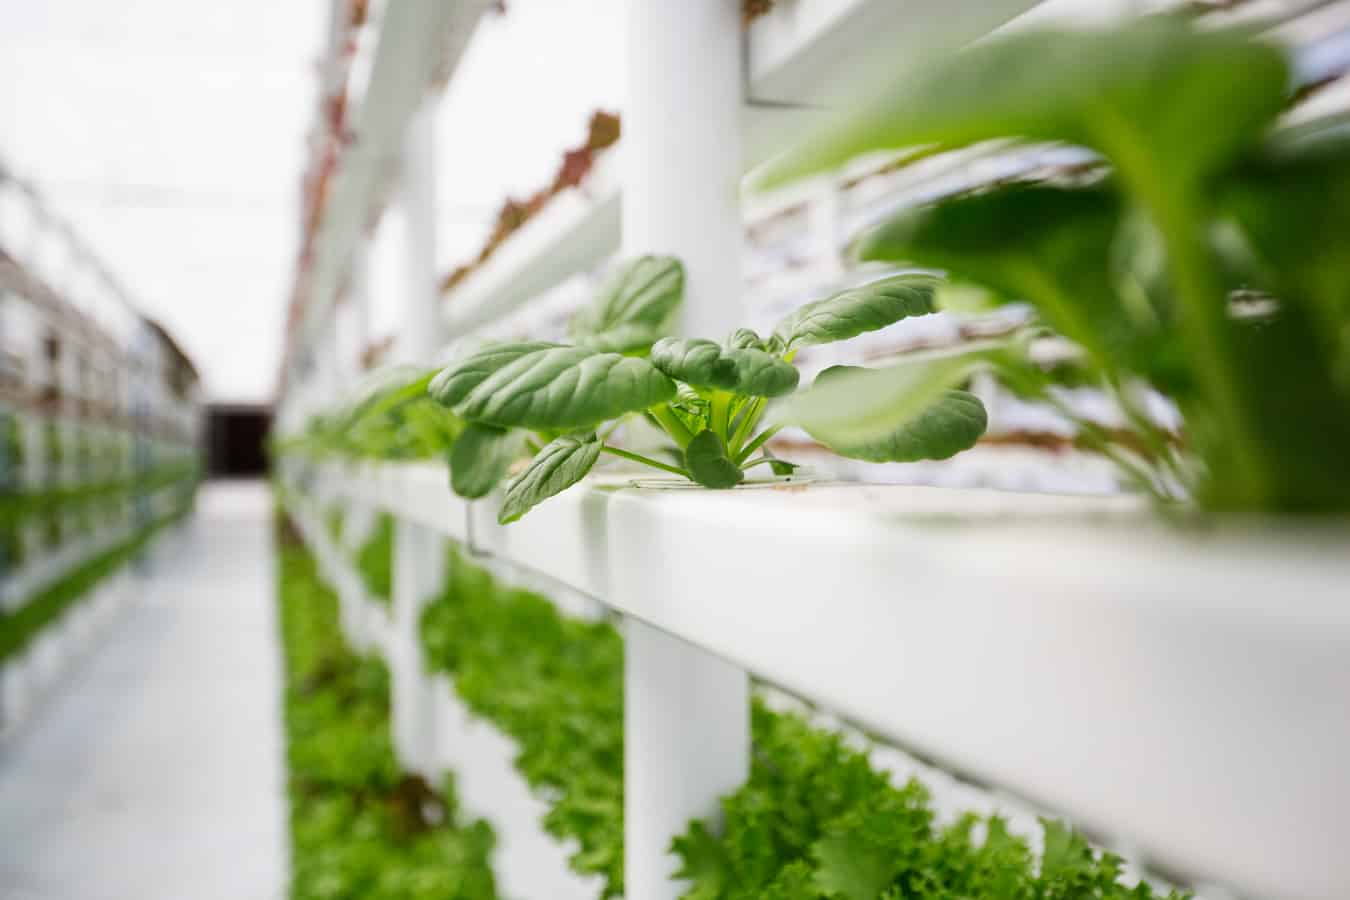 AgTech farm development company, 7 Generations, works to provide Native communities and classrooms with better food through indoor vertical farms.